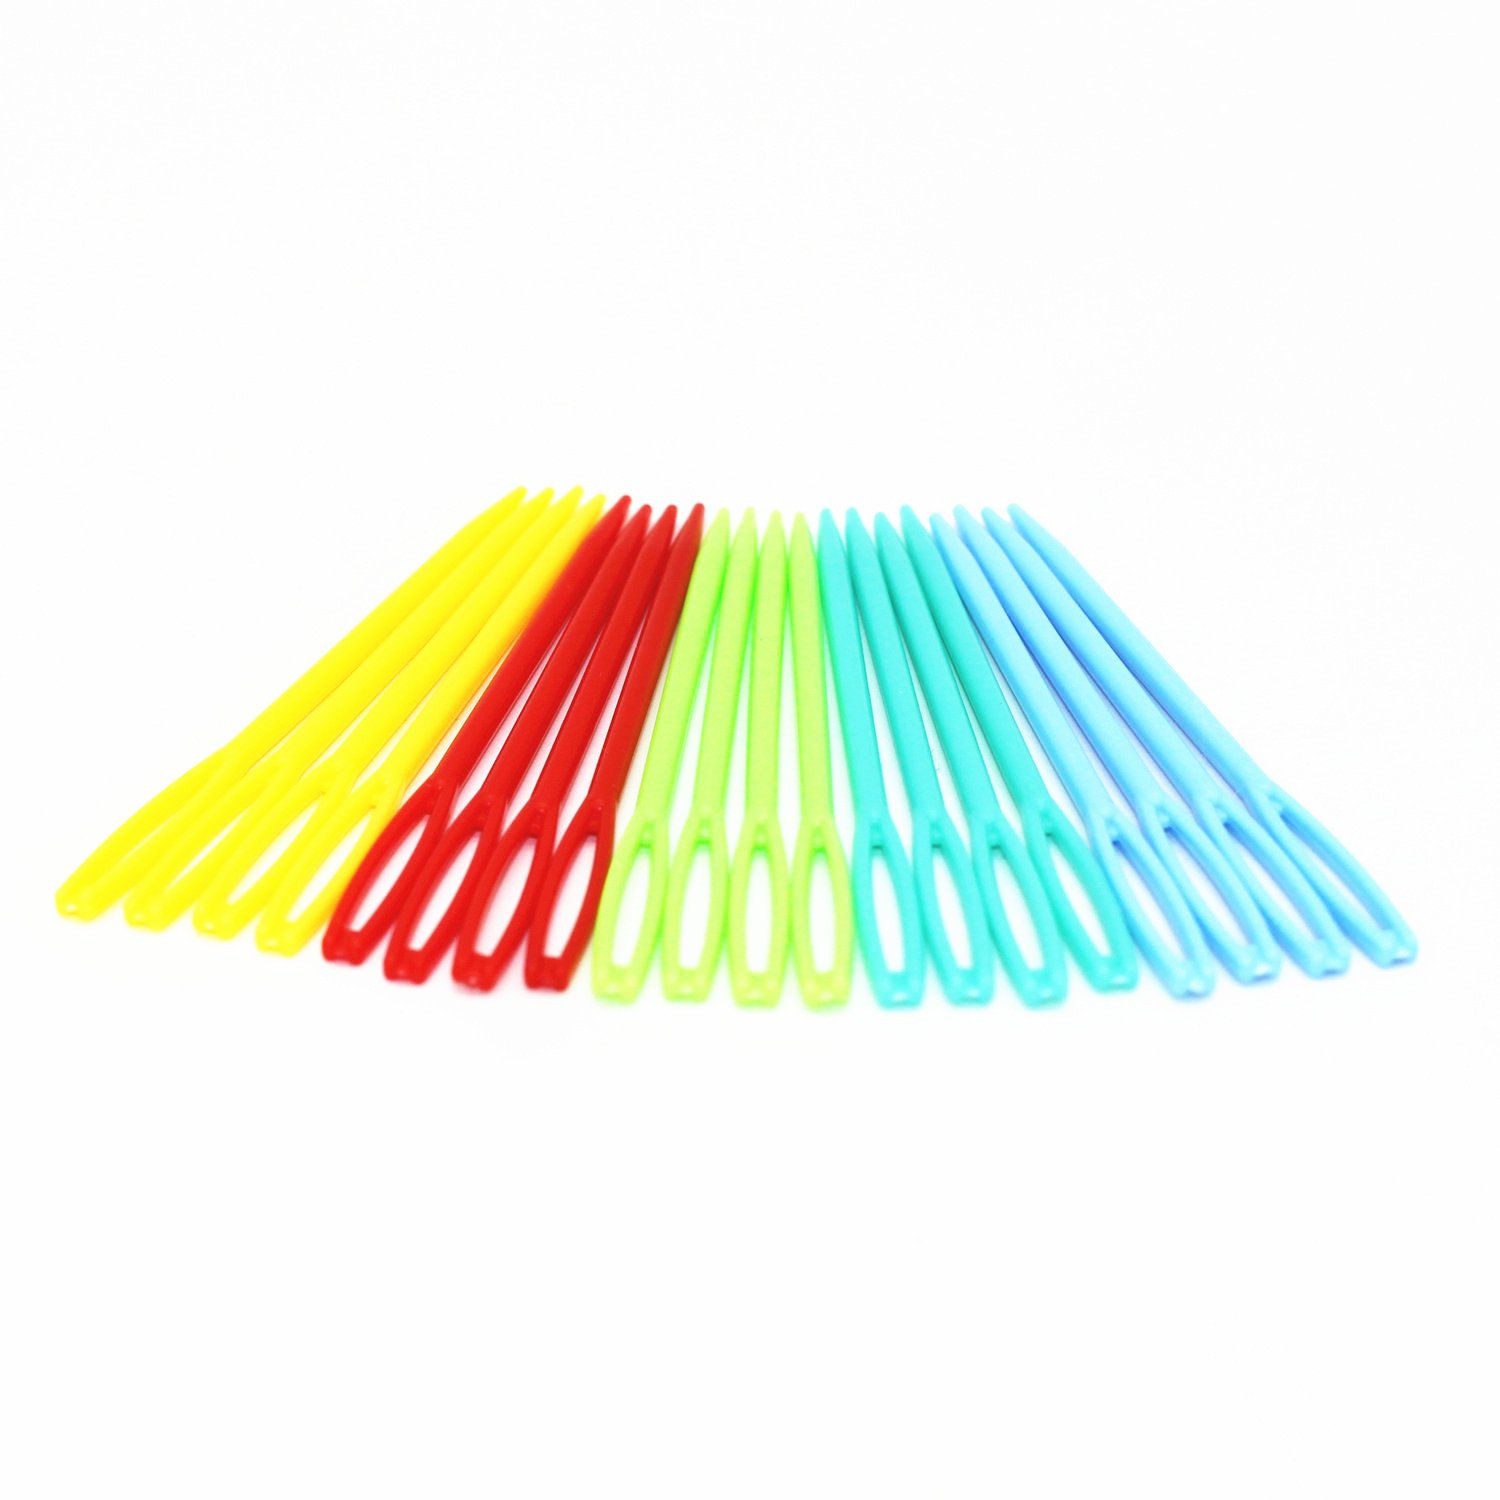 WEICHUAN 100PCS Crafts Plastic Lacing Needles 9CM Multicolor Plastic Hand Sewing Yarn Darning Tapestry Needles